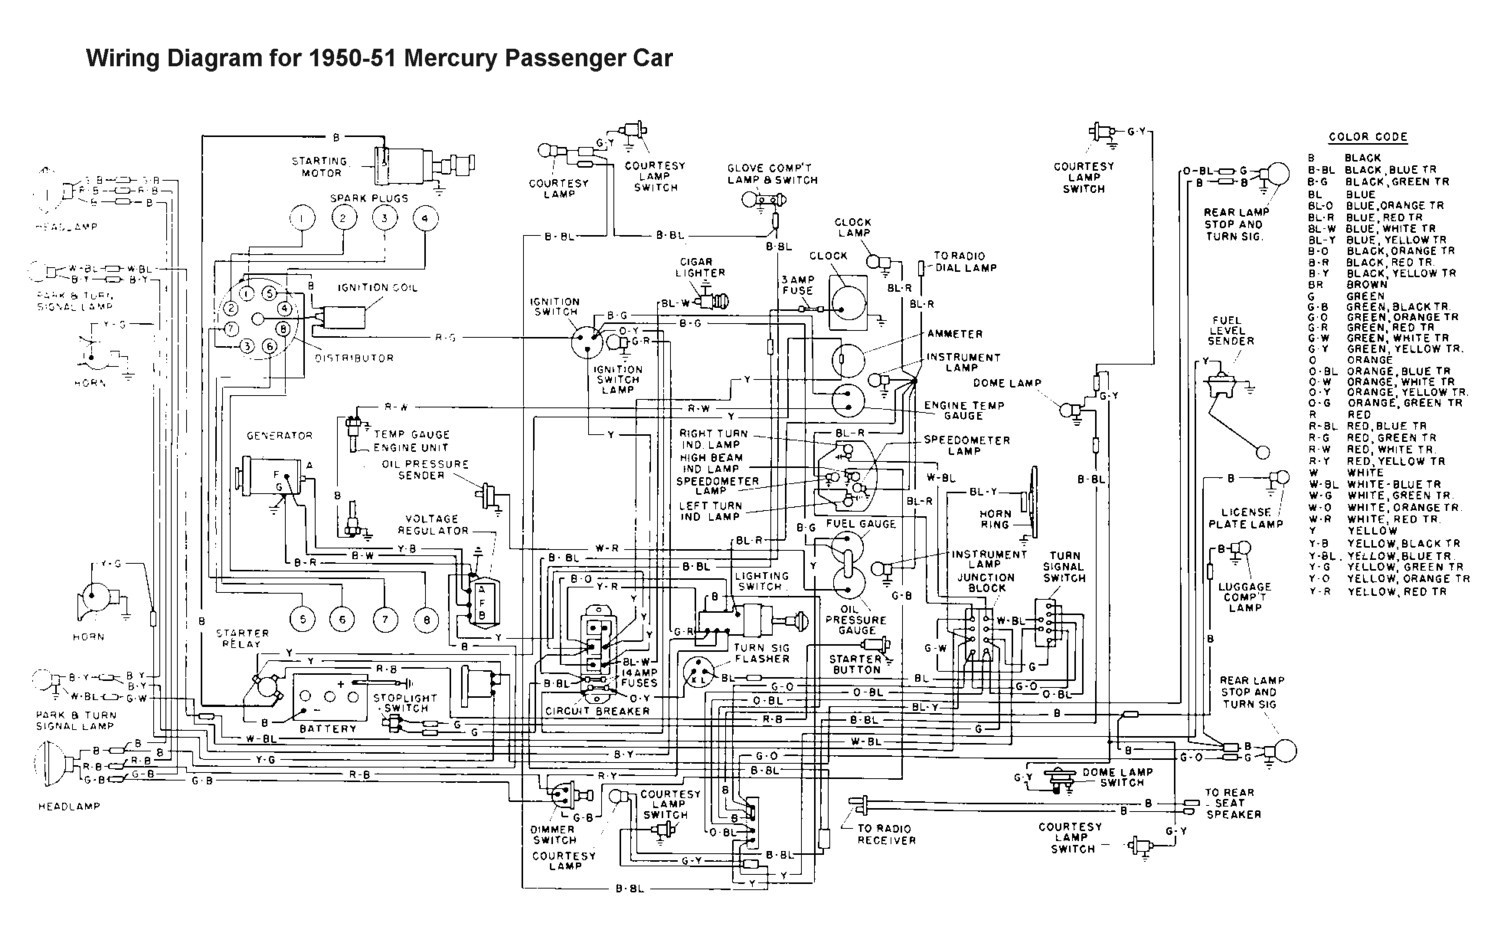 1955 Chevrolet Ignition Switch Wiring Diagram Circuit Chevy Bel Air besides 1955 Ford Fairlane Wiring Diagram likewise Flathead drawings electrical in addition 1953 Chevy Apache Wiring Diagram as well C3 C4 Corvette Vacuum Diagrams Grumpys Performance Garage Img 1957. on 1953 ford f100 wiring diagram